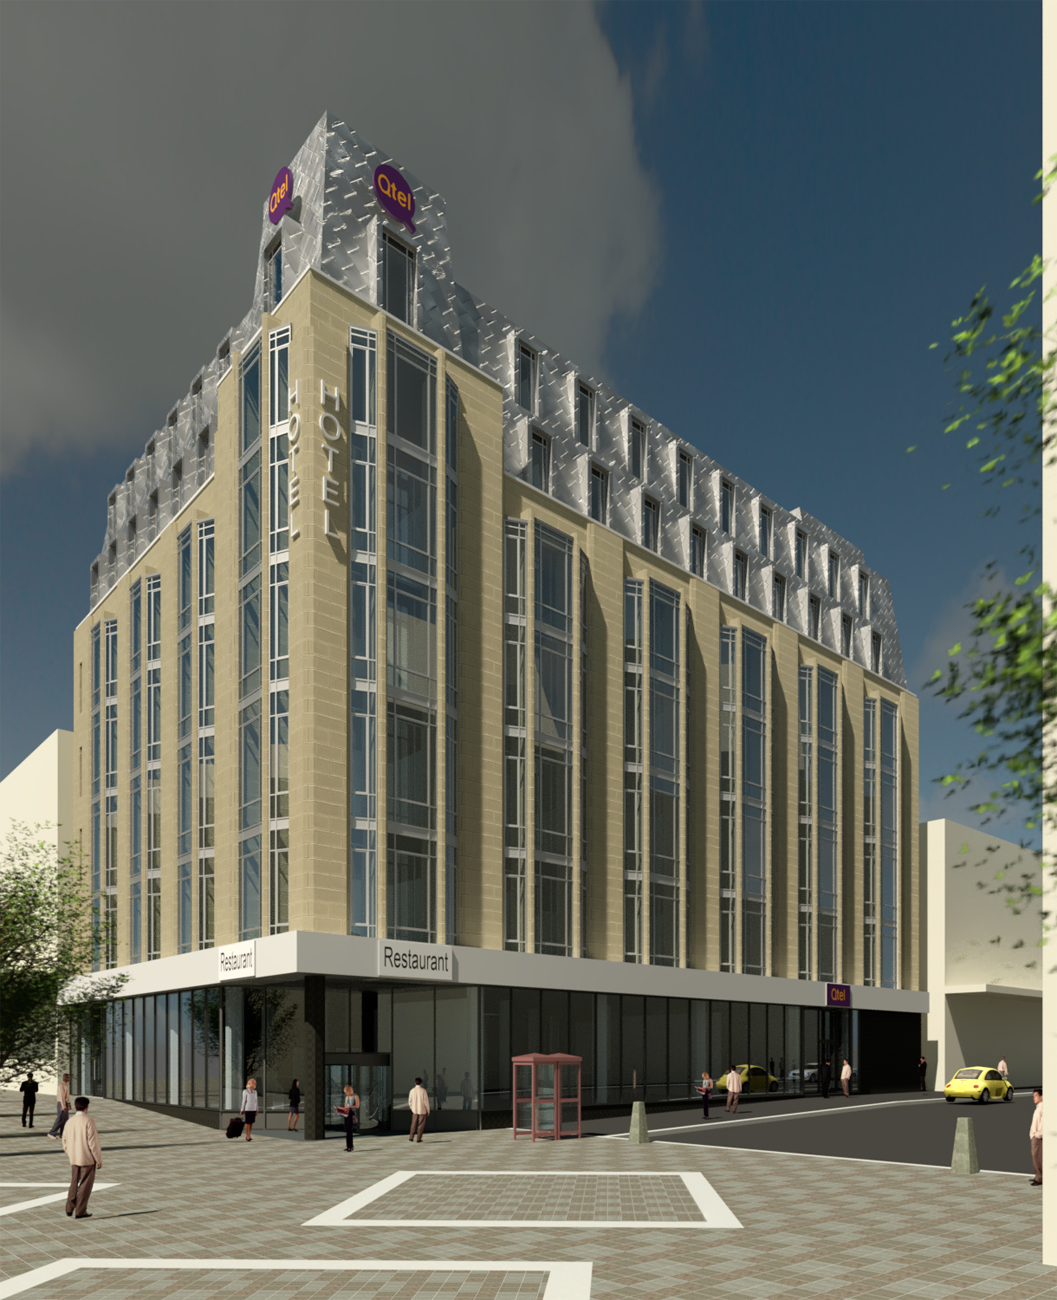 Plans Submitted for Scotland's First Qtel Hotel on Sauchiehall Street in Glasgow